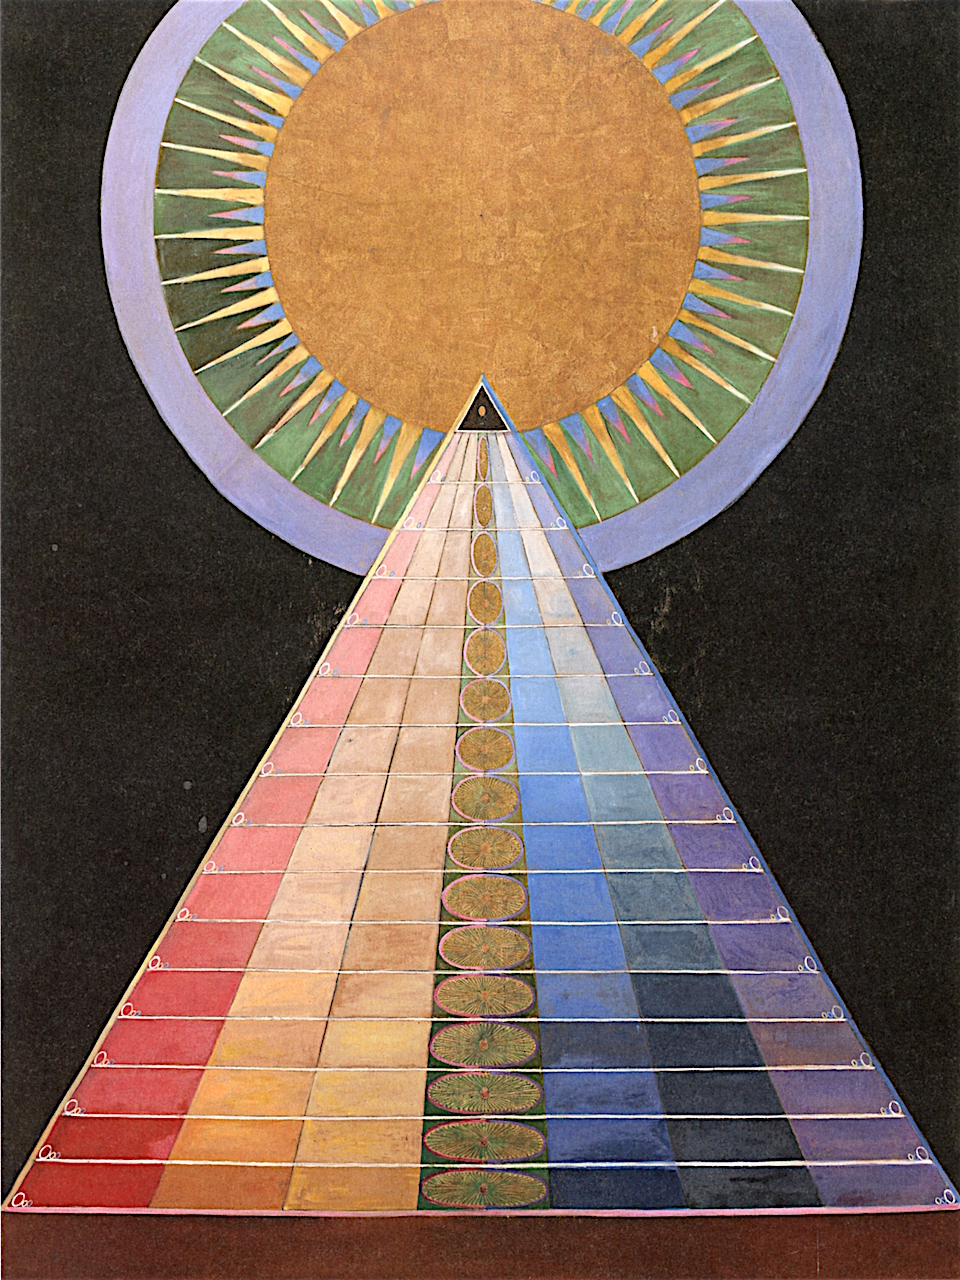 Hilma af Klint Altarpiece No. 1, 1915 237.5 x 179.5 cm Oil and metal leaf on canvas